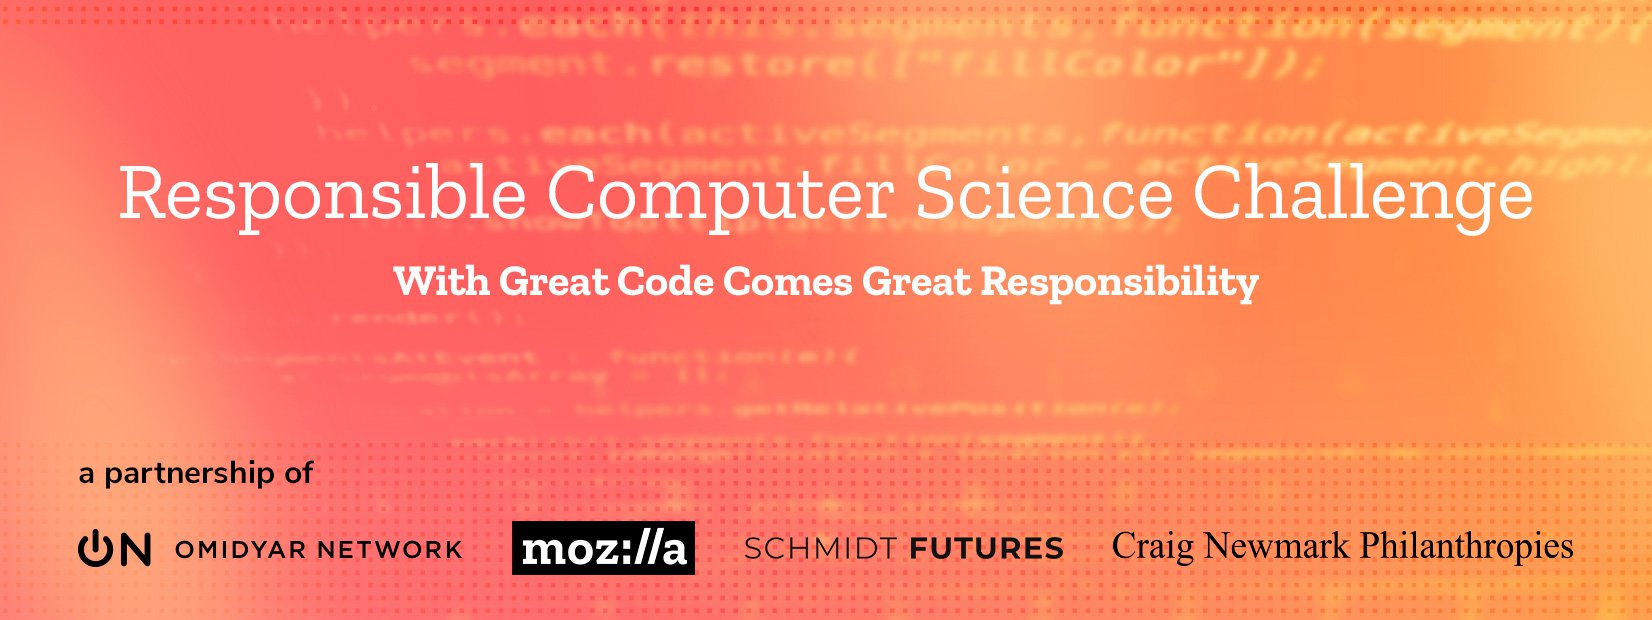 Responsible Computer Science Challenge banner with logos